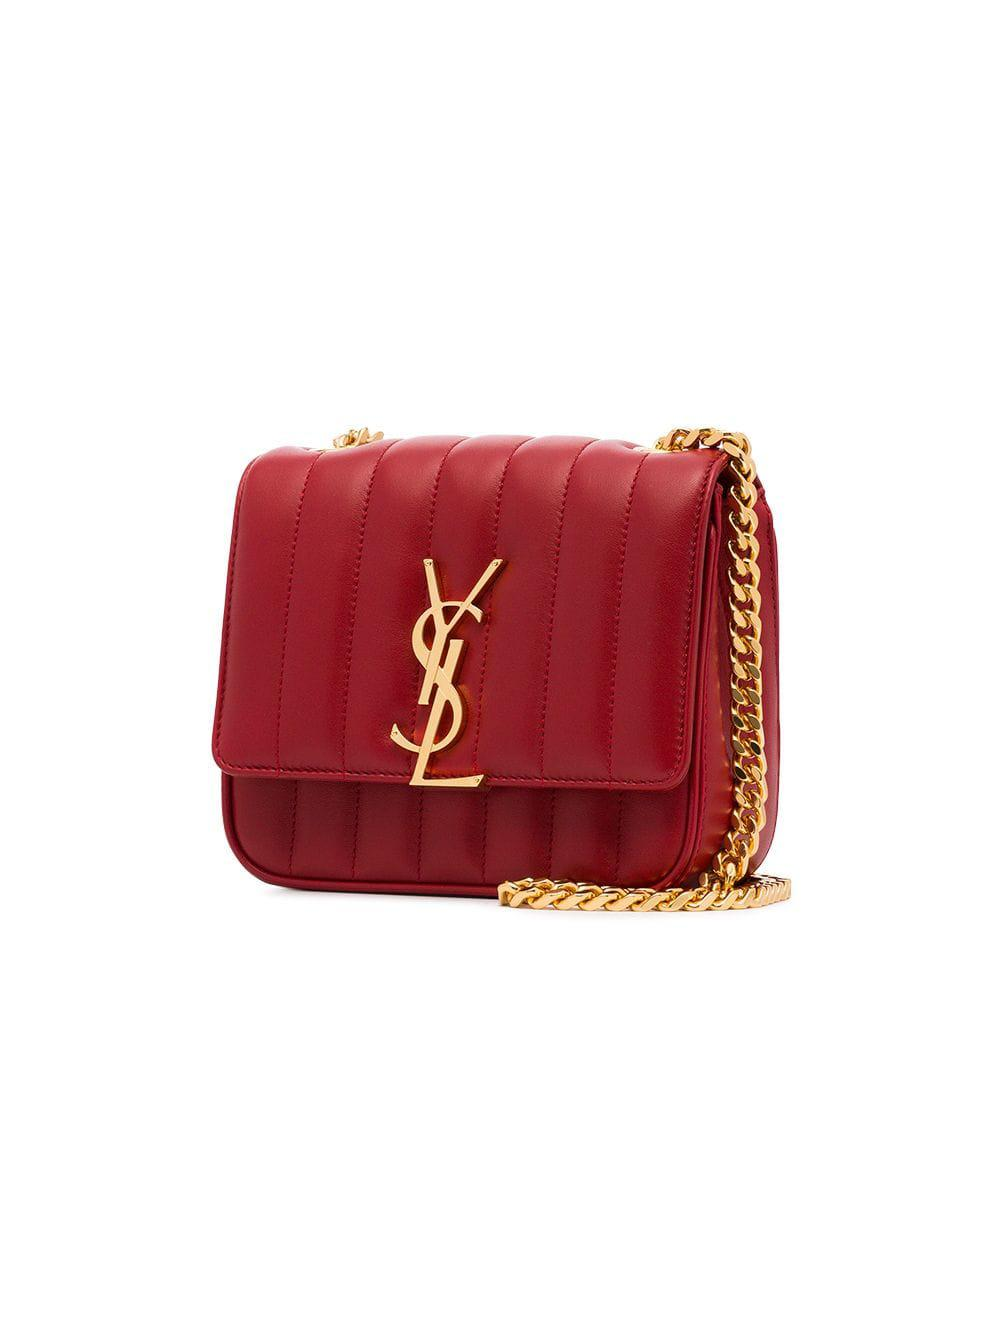 d3a98403d5 Saint Laurent - Red Vicky Small Quilted Leather Bag - Lyst. View fullscreen